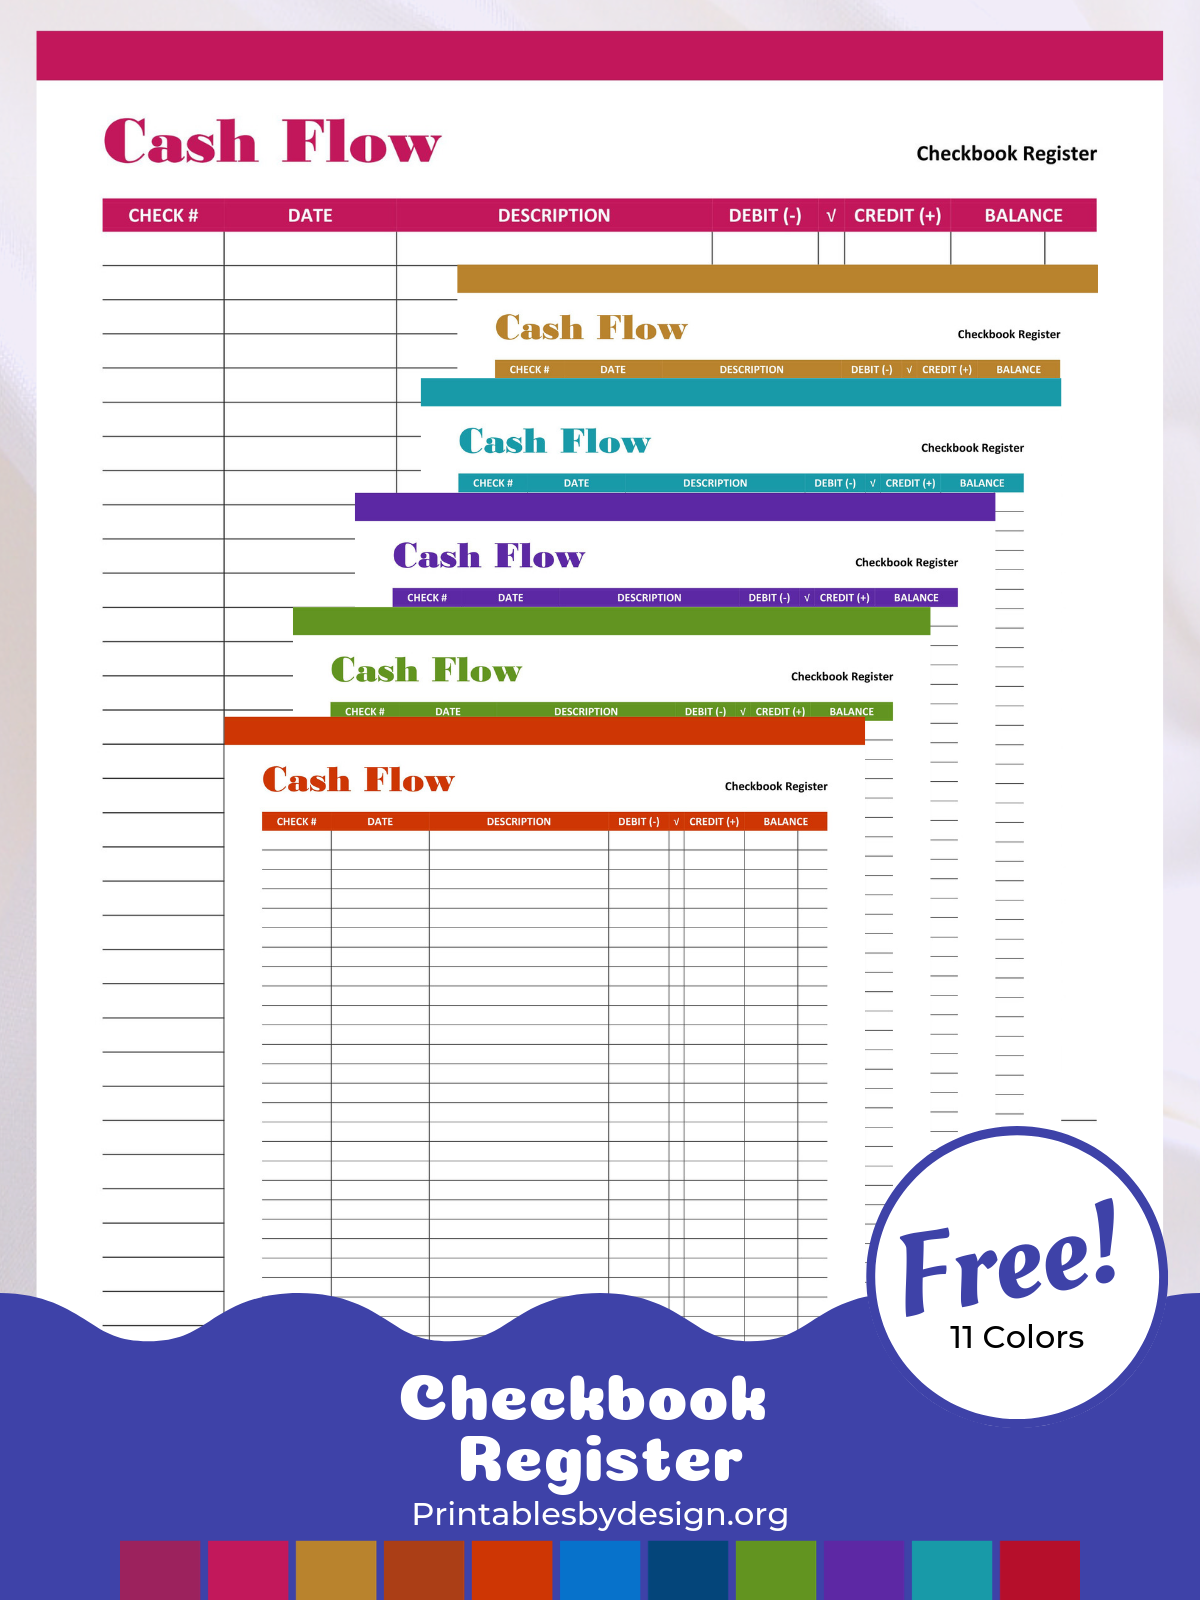 Checkbook Register Printables By Design